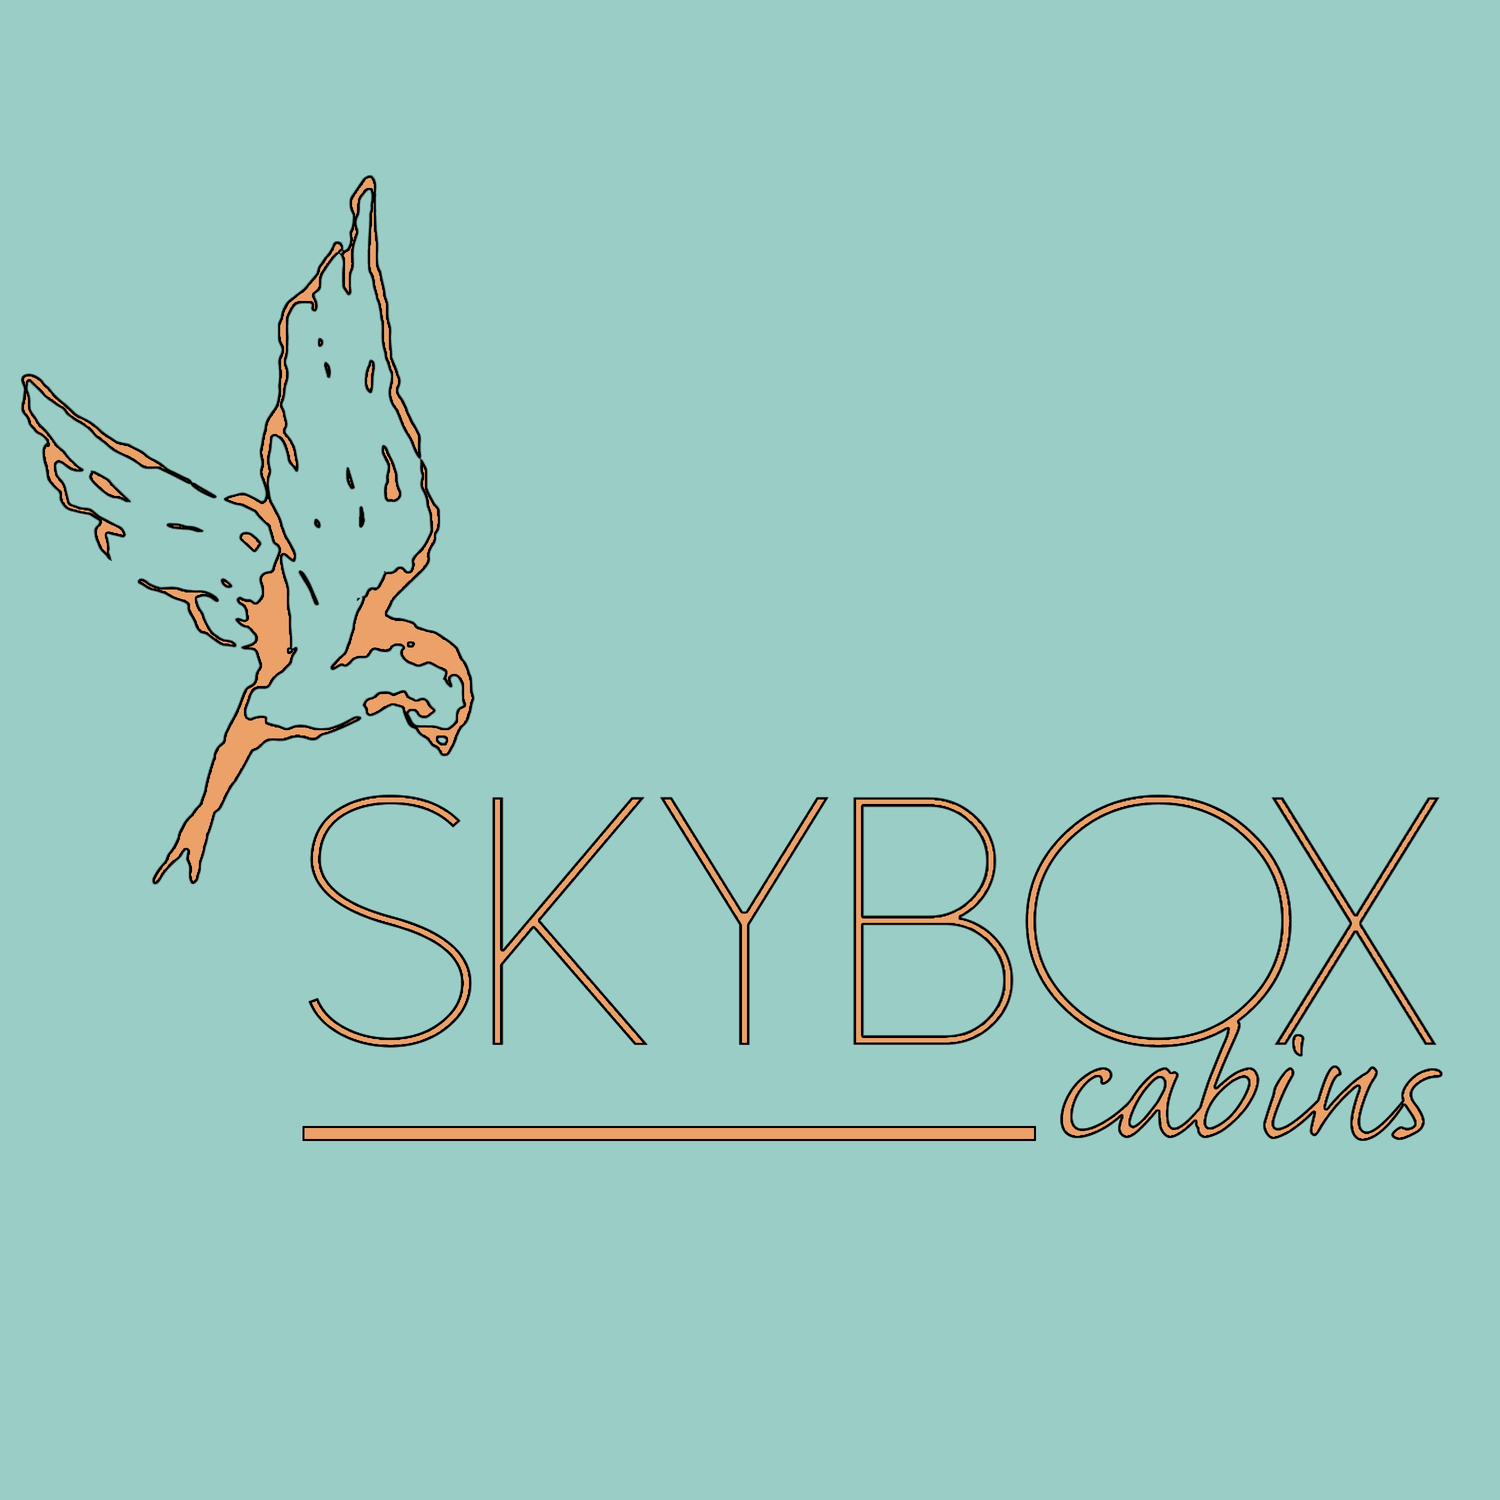 Skybox Cabins - Unique Cabins in Glen Rose